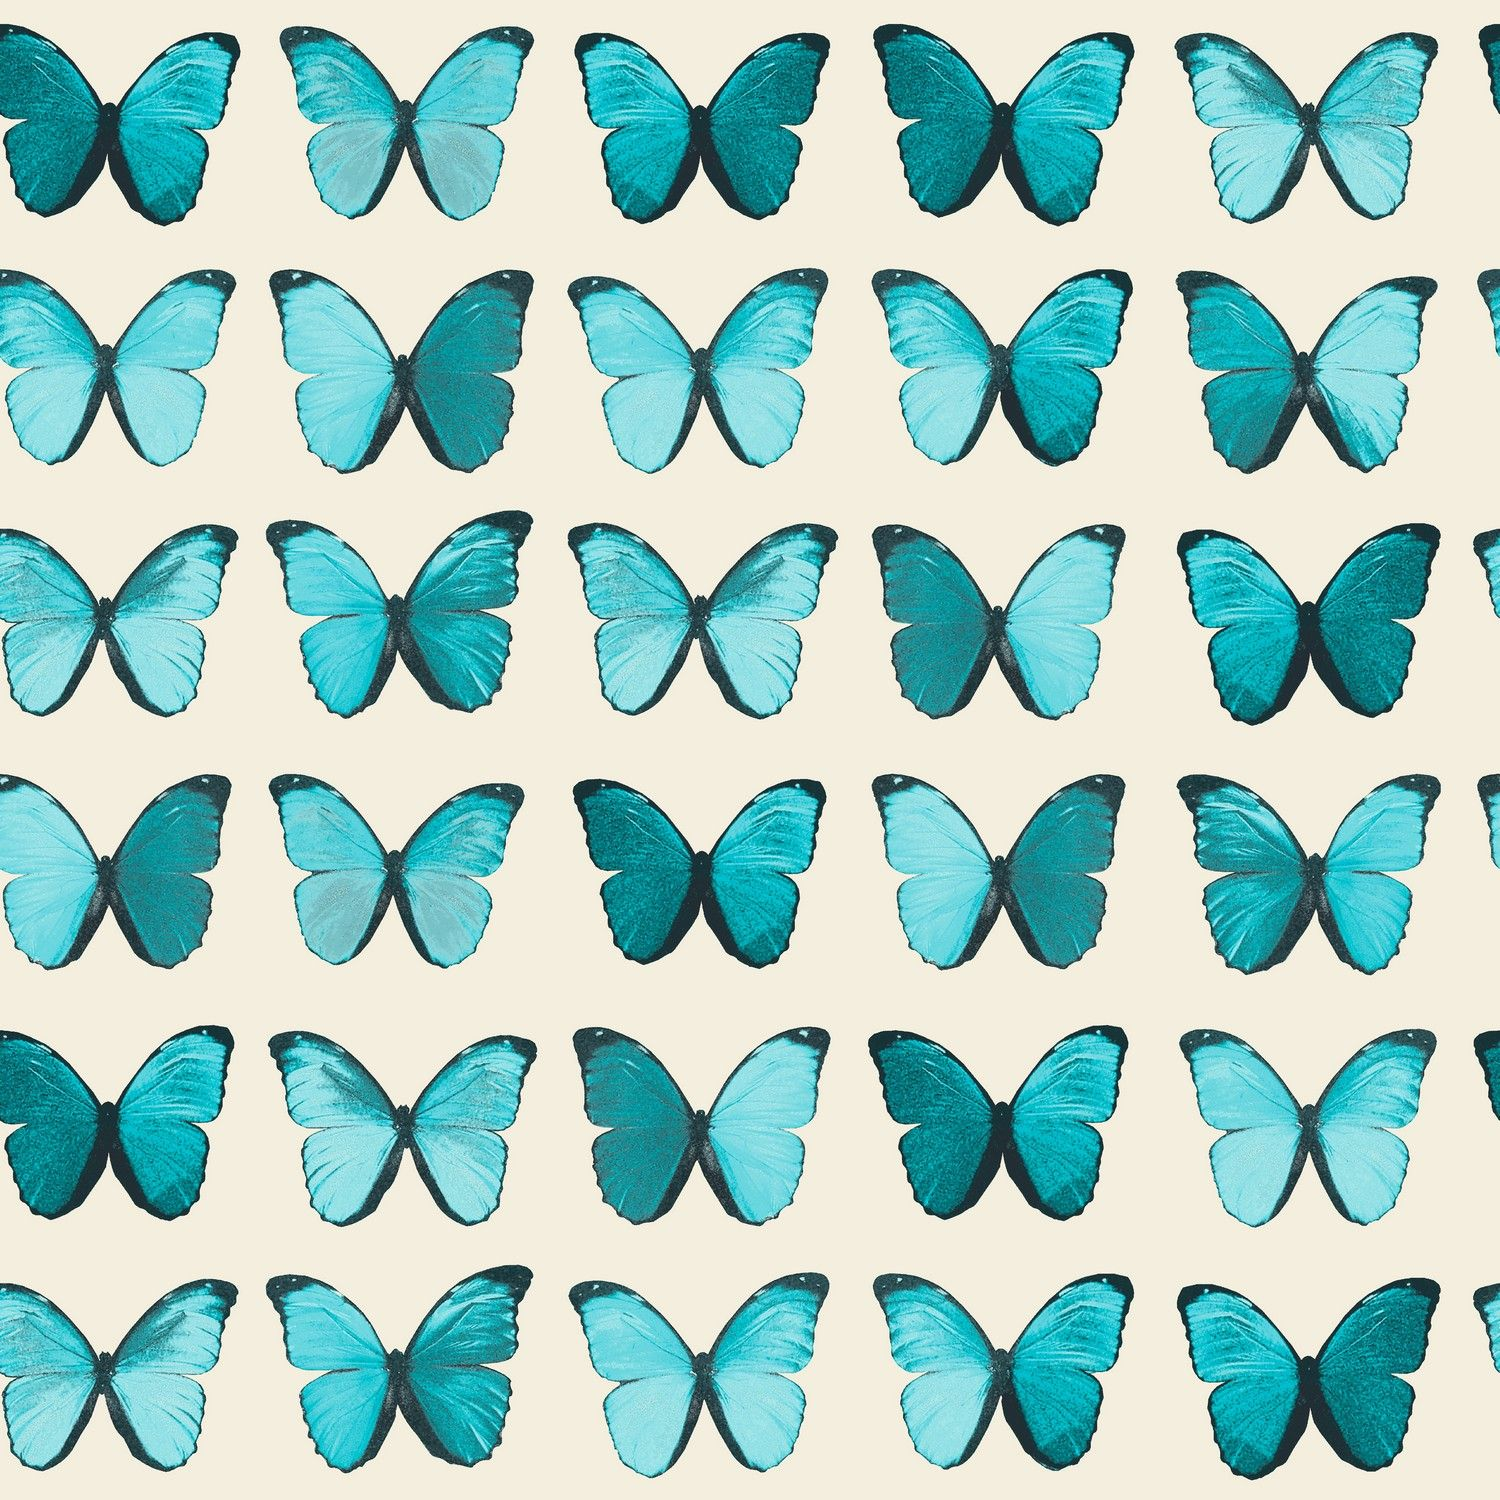 The Papillon Wallpaper In Teal From Arthouse Is A Classic And